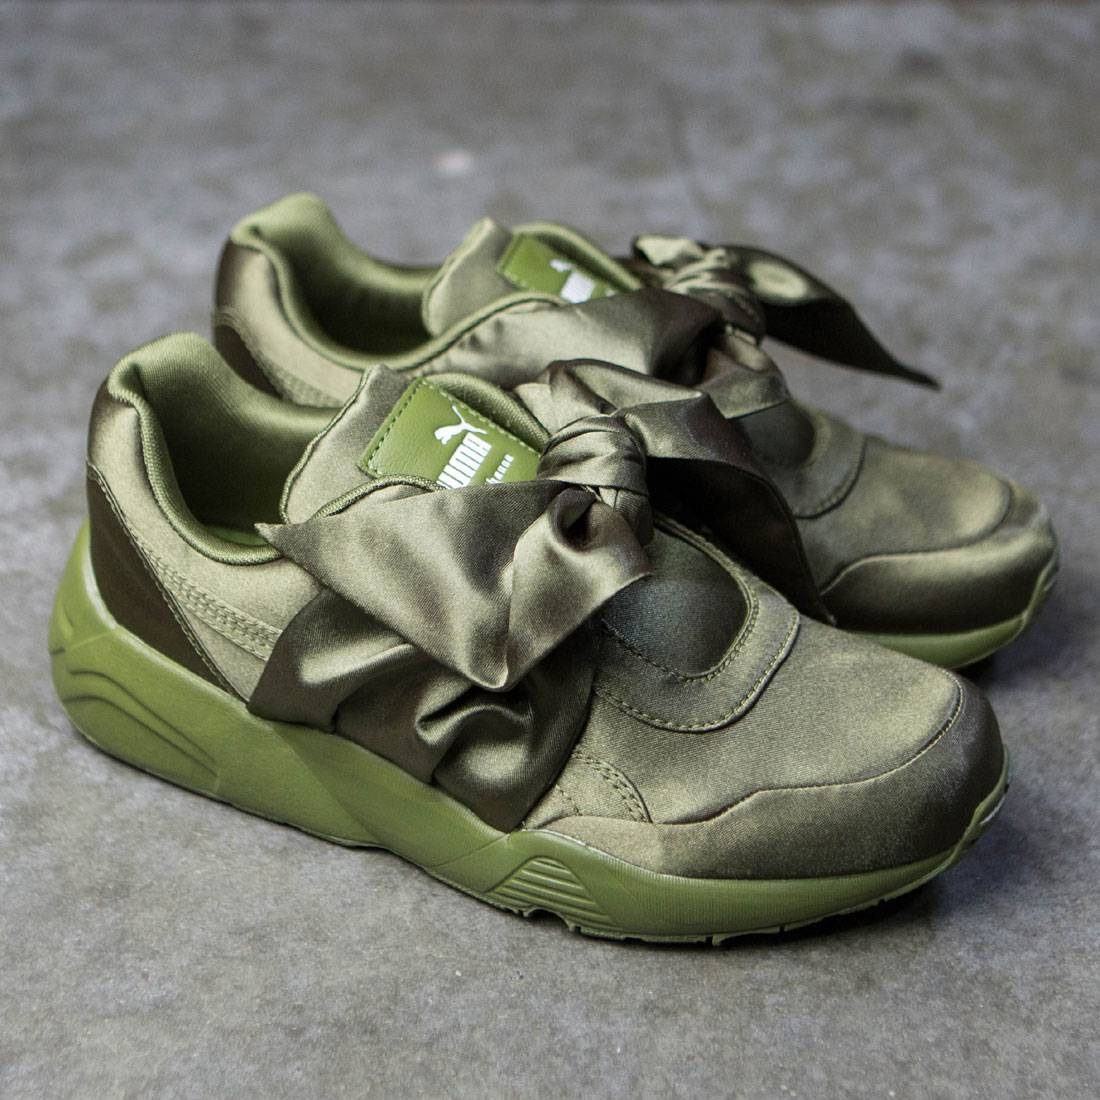 9898daf7a483d4 womens fenty puma by rihanna bow sneakers olive branch olive branch ...